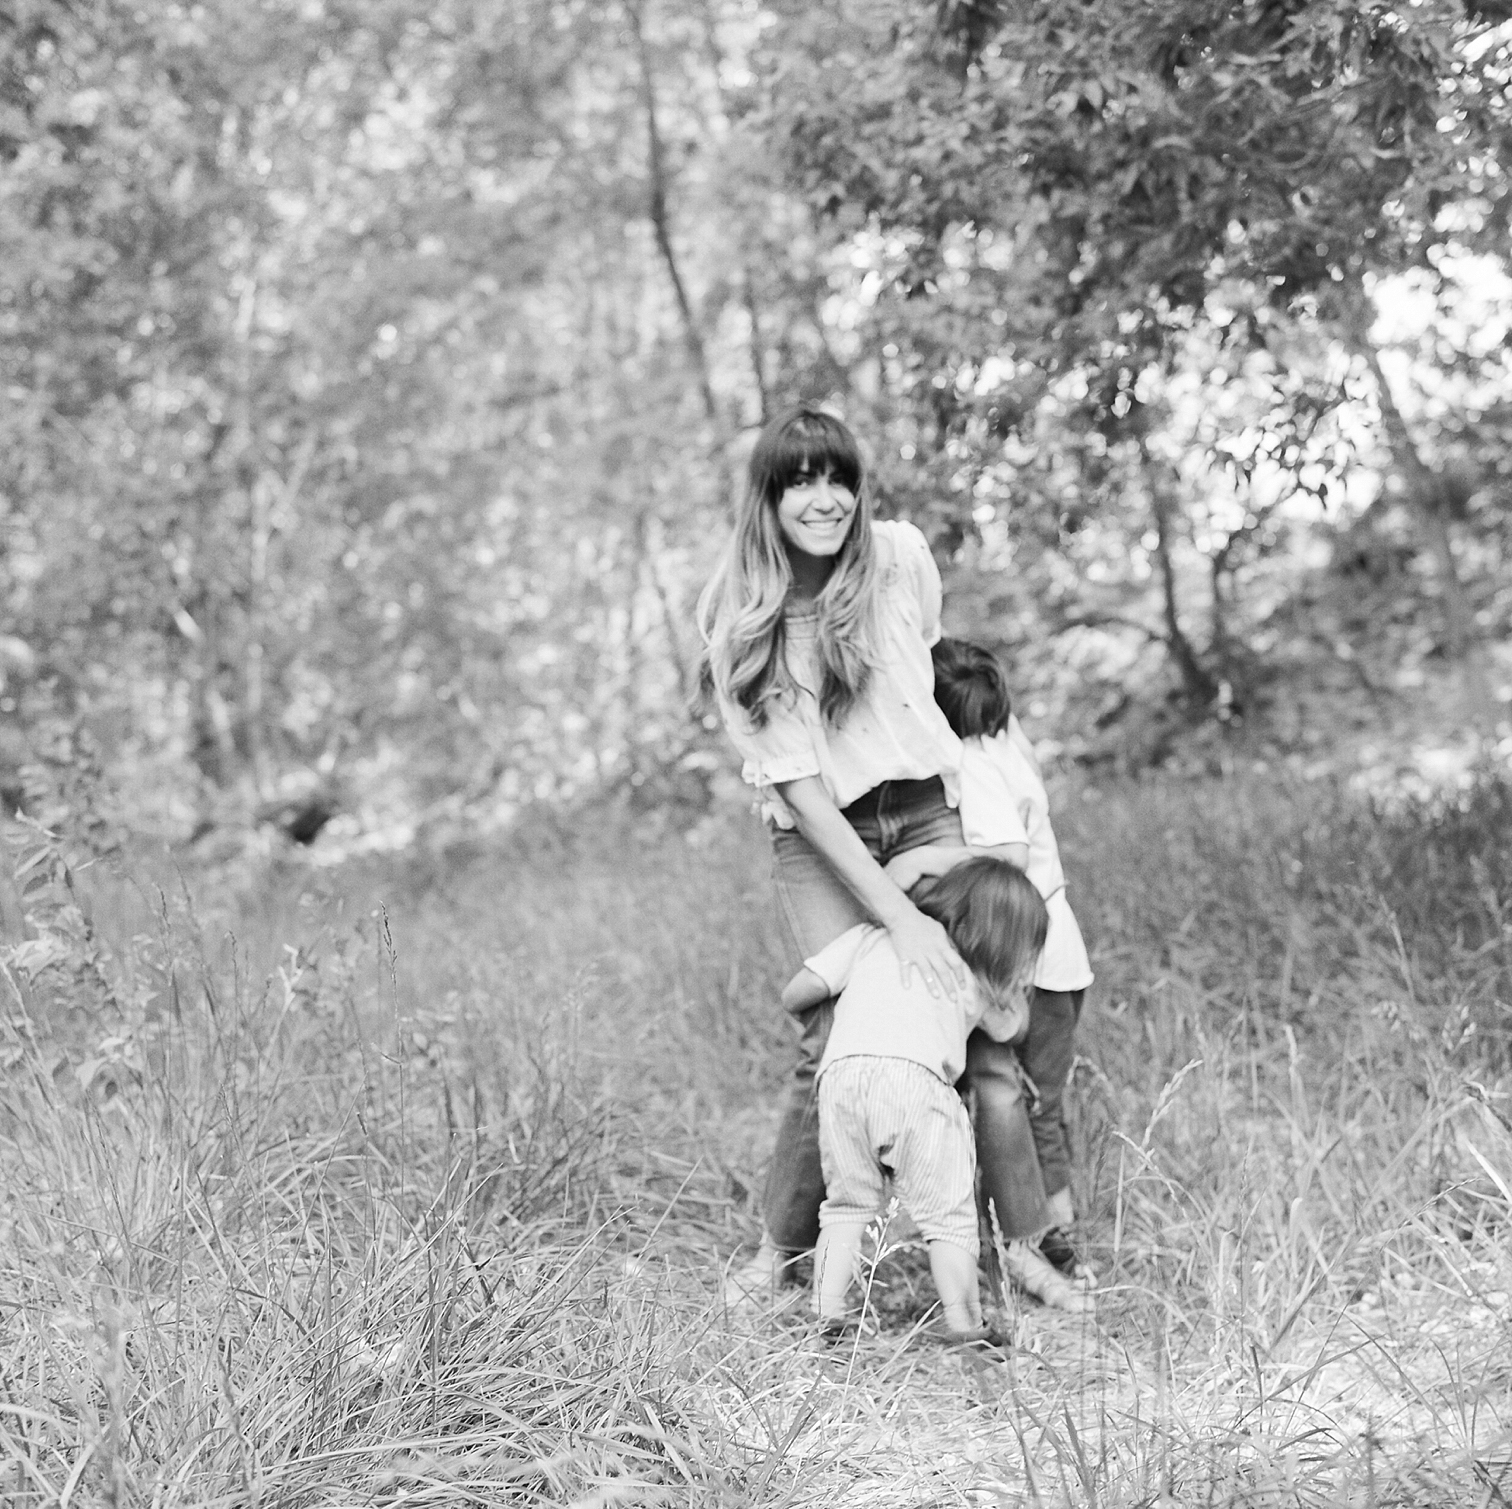 Film Photographers, Colorado Family Portraits, Fort Collins Portrait Photographer, Summer Family Portraits, Mother With Children, Rolleflex Camera, Danielle DeFiore Photography